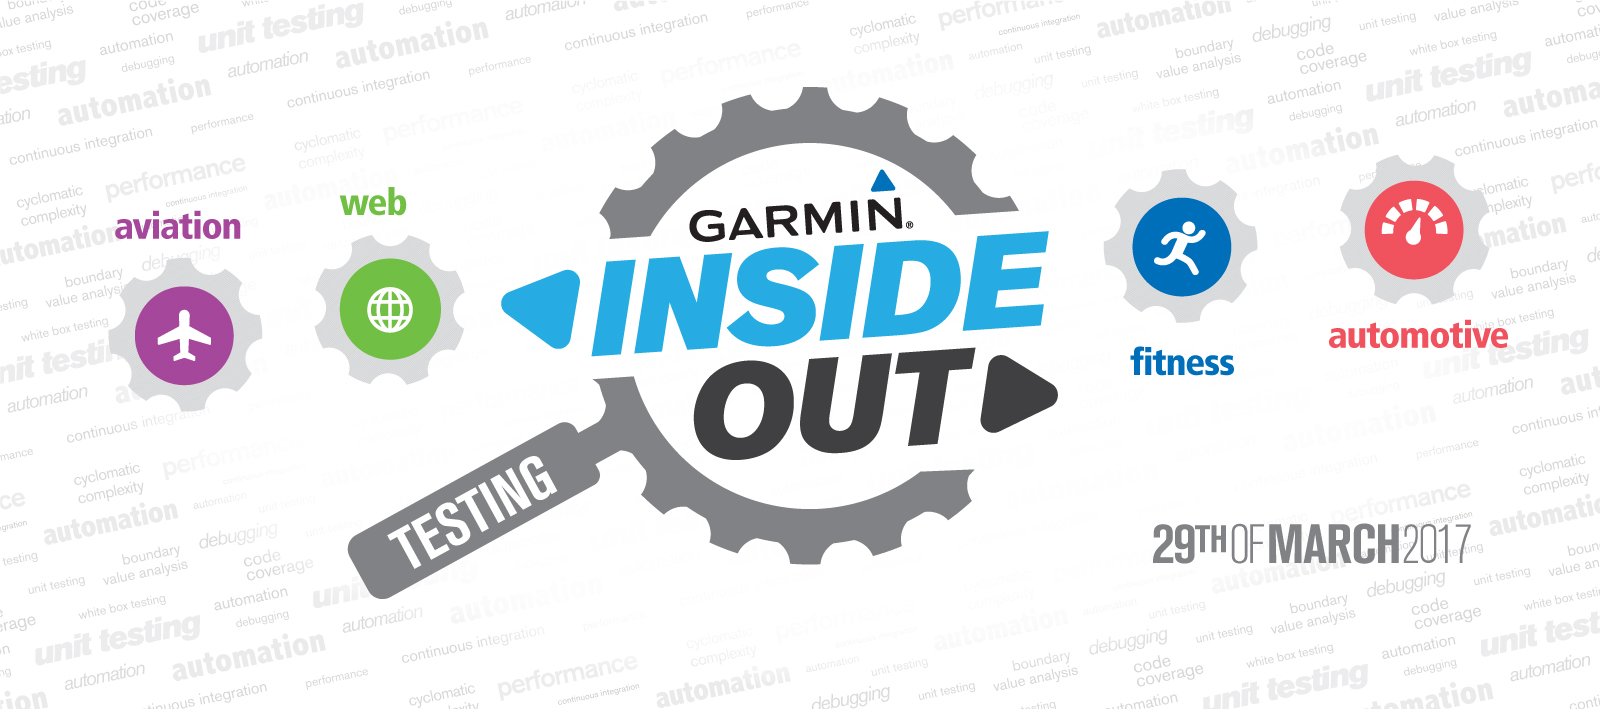 Garmin Inside Out